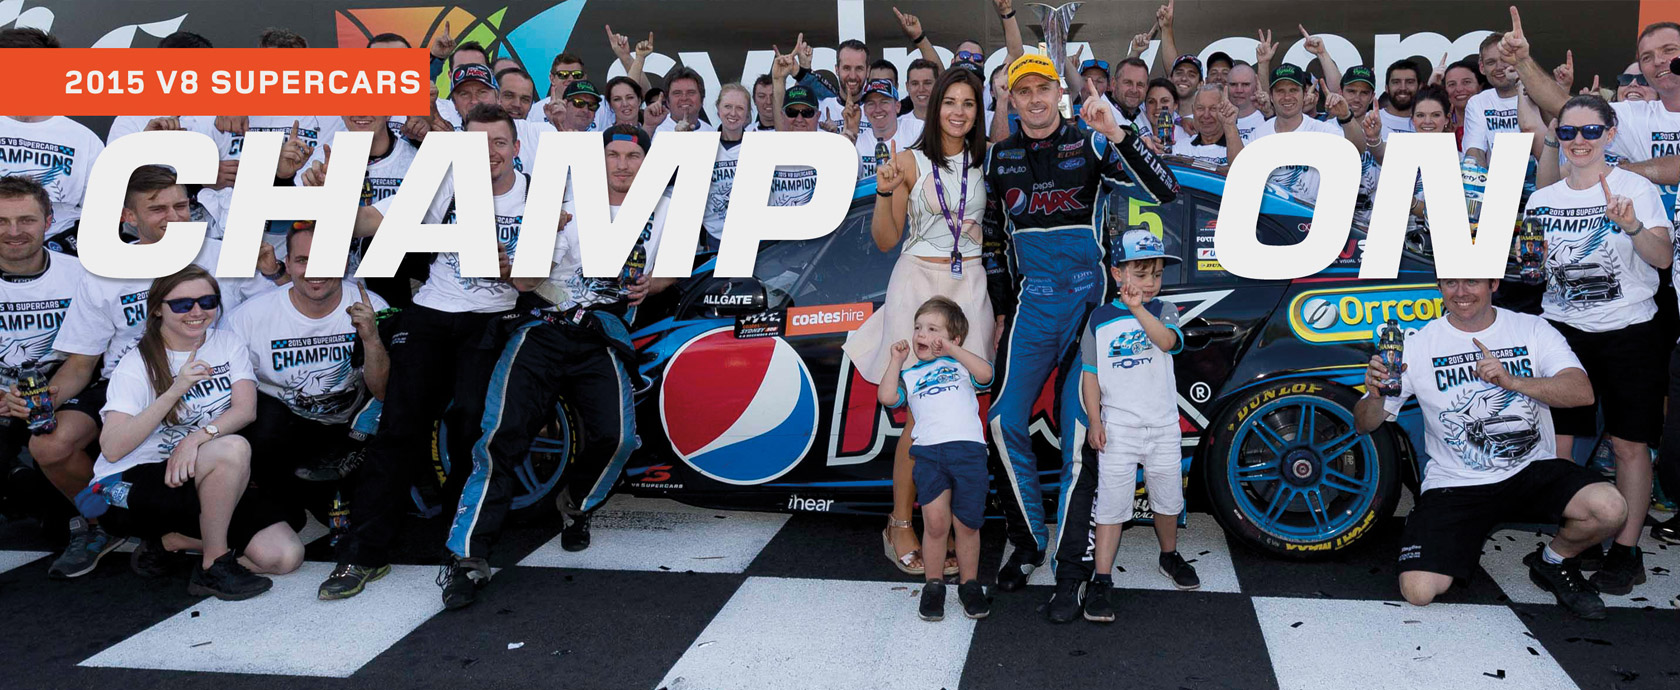 Mark Winterbottom's 2015 V8 Supercar Series Highlights Video